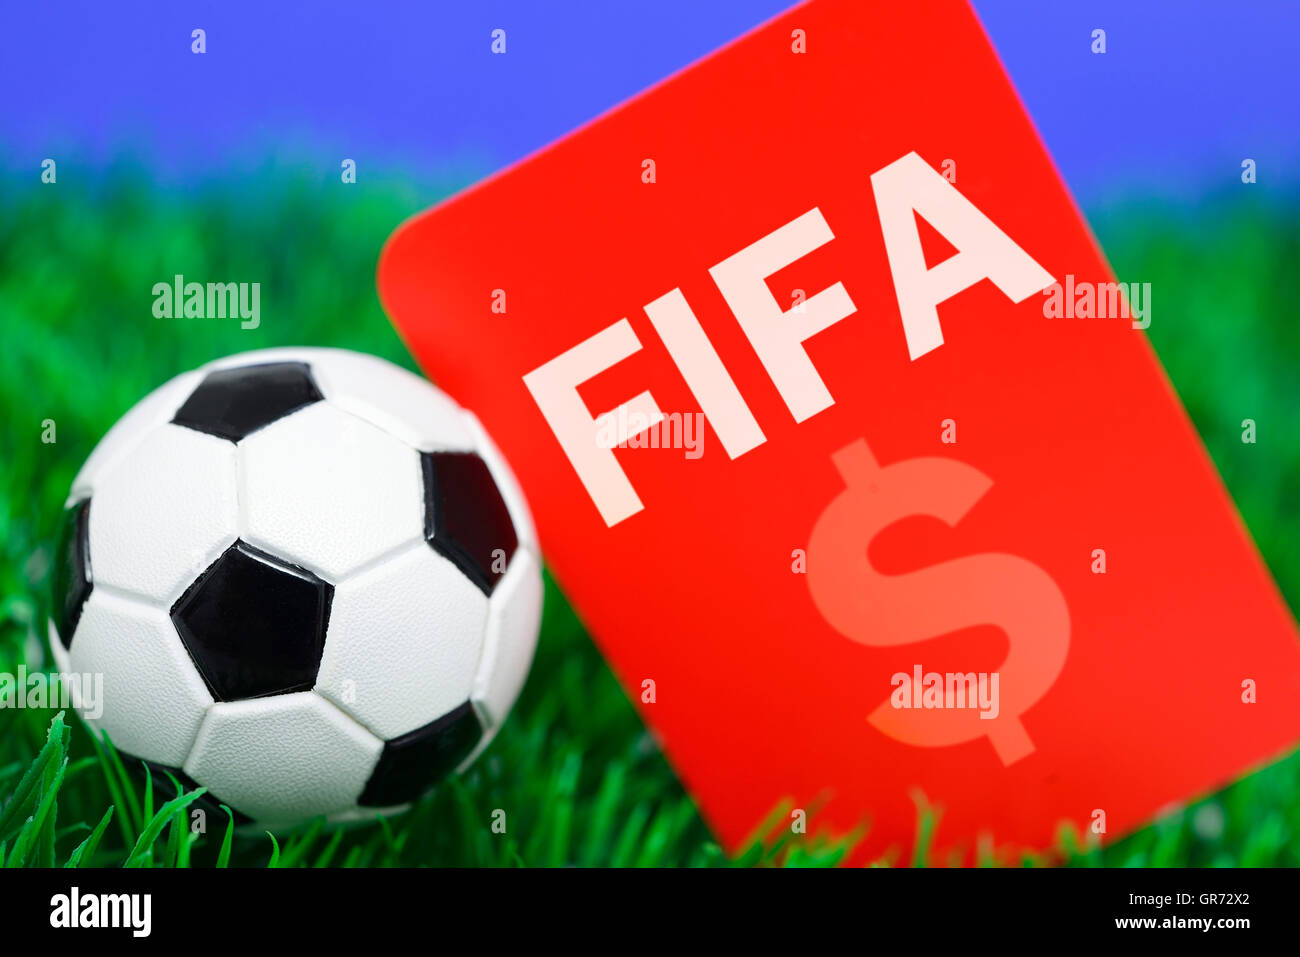 Miniature Soccer Ball And Red Card, Fifa Scandal - Stock Image